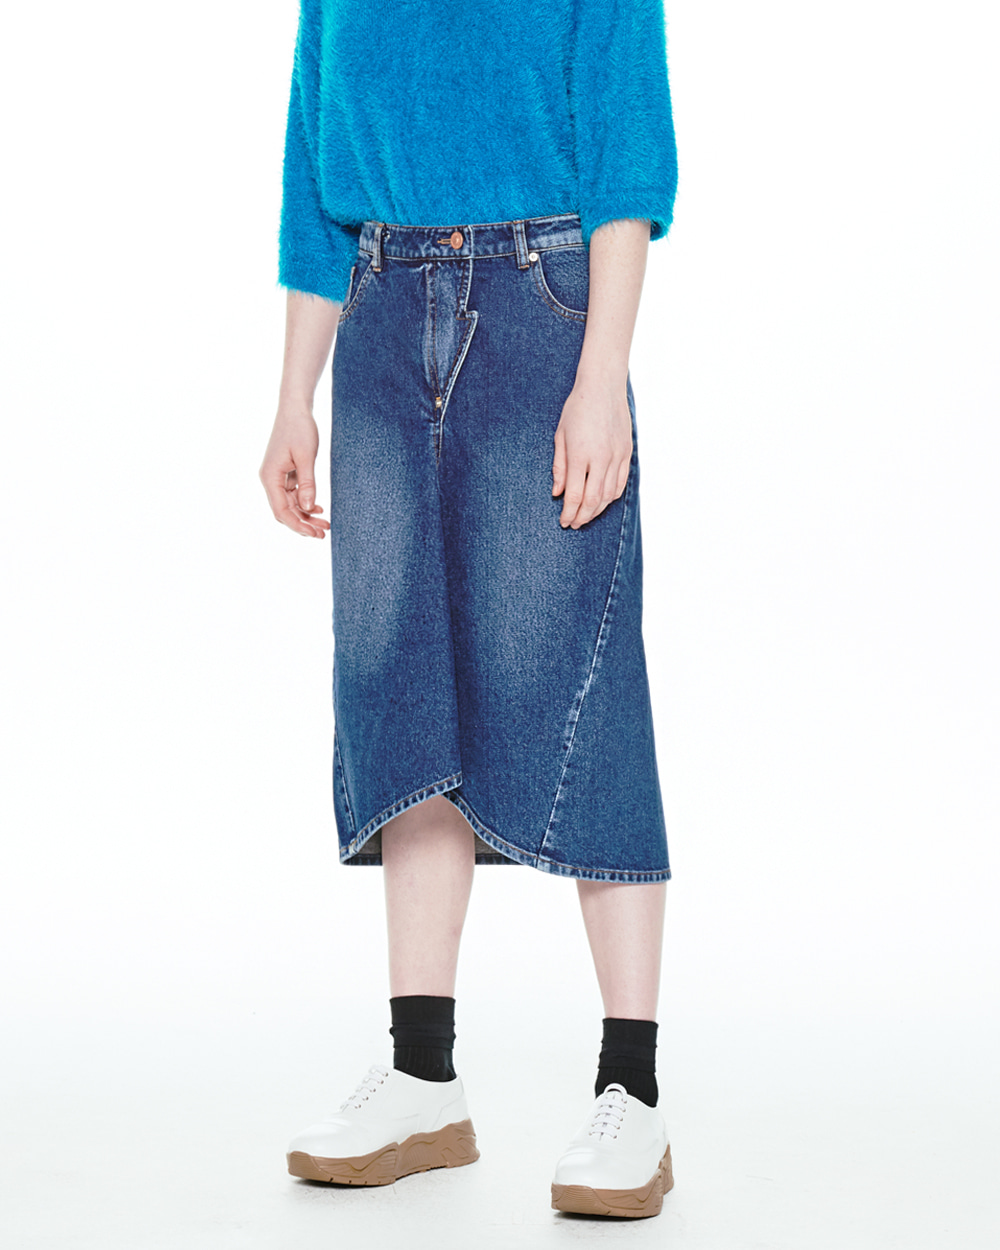 FW20 FRONT FLARE DENIM SKIRT